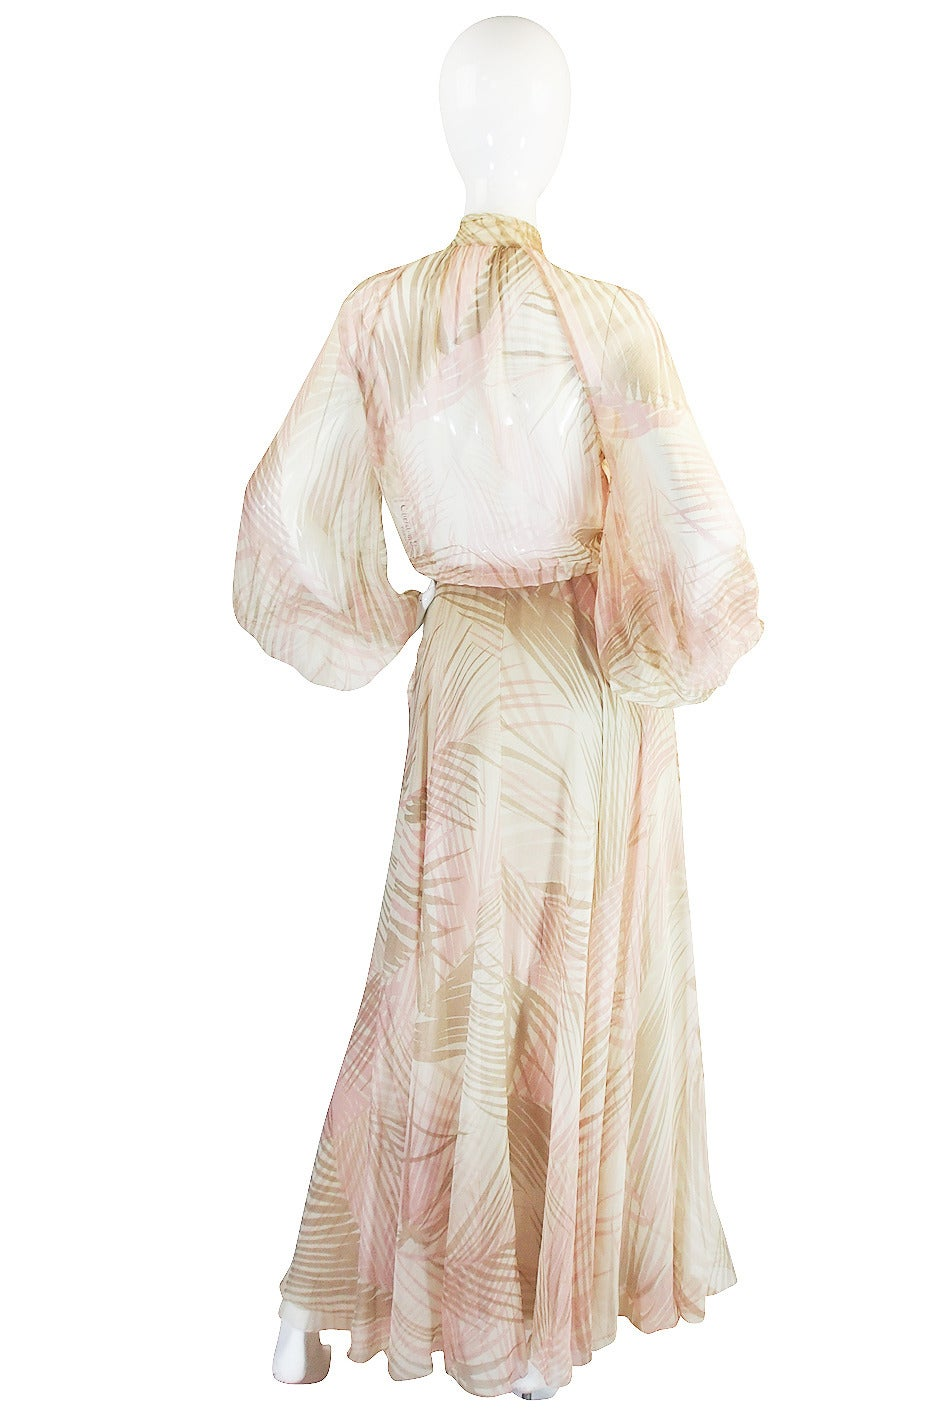 S/S 1974 Christian Dior Haute Couture Silk Gown In Excellent Condition For Sale In Toronto, CA